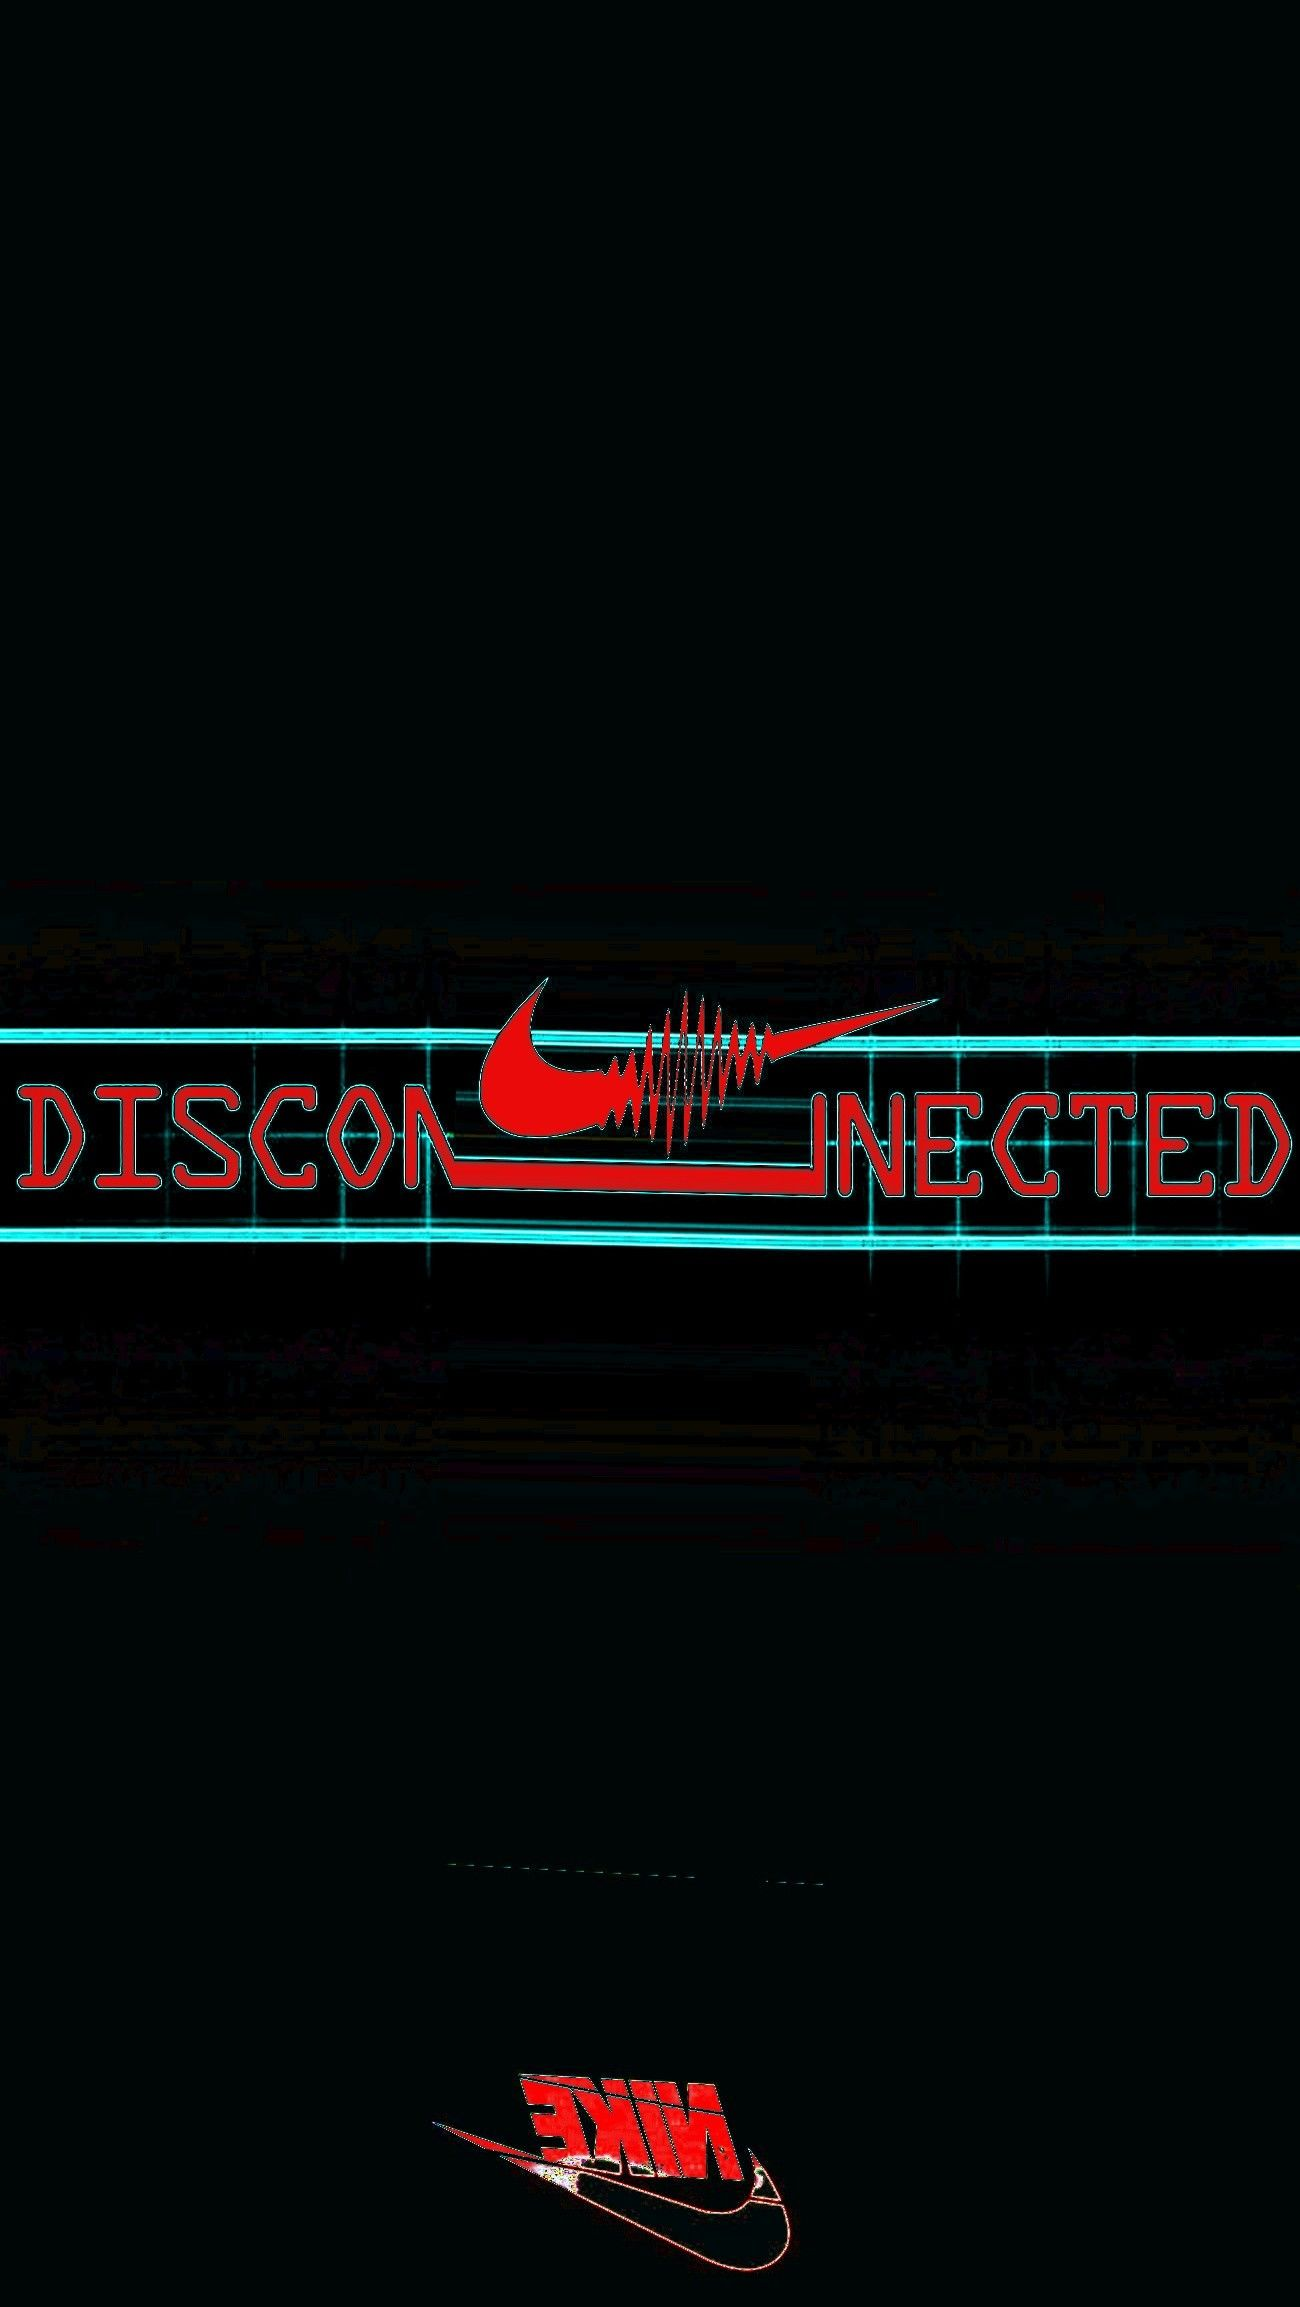 Pin by Hooter's designs on Nike wallpaper in 2020